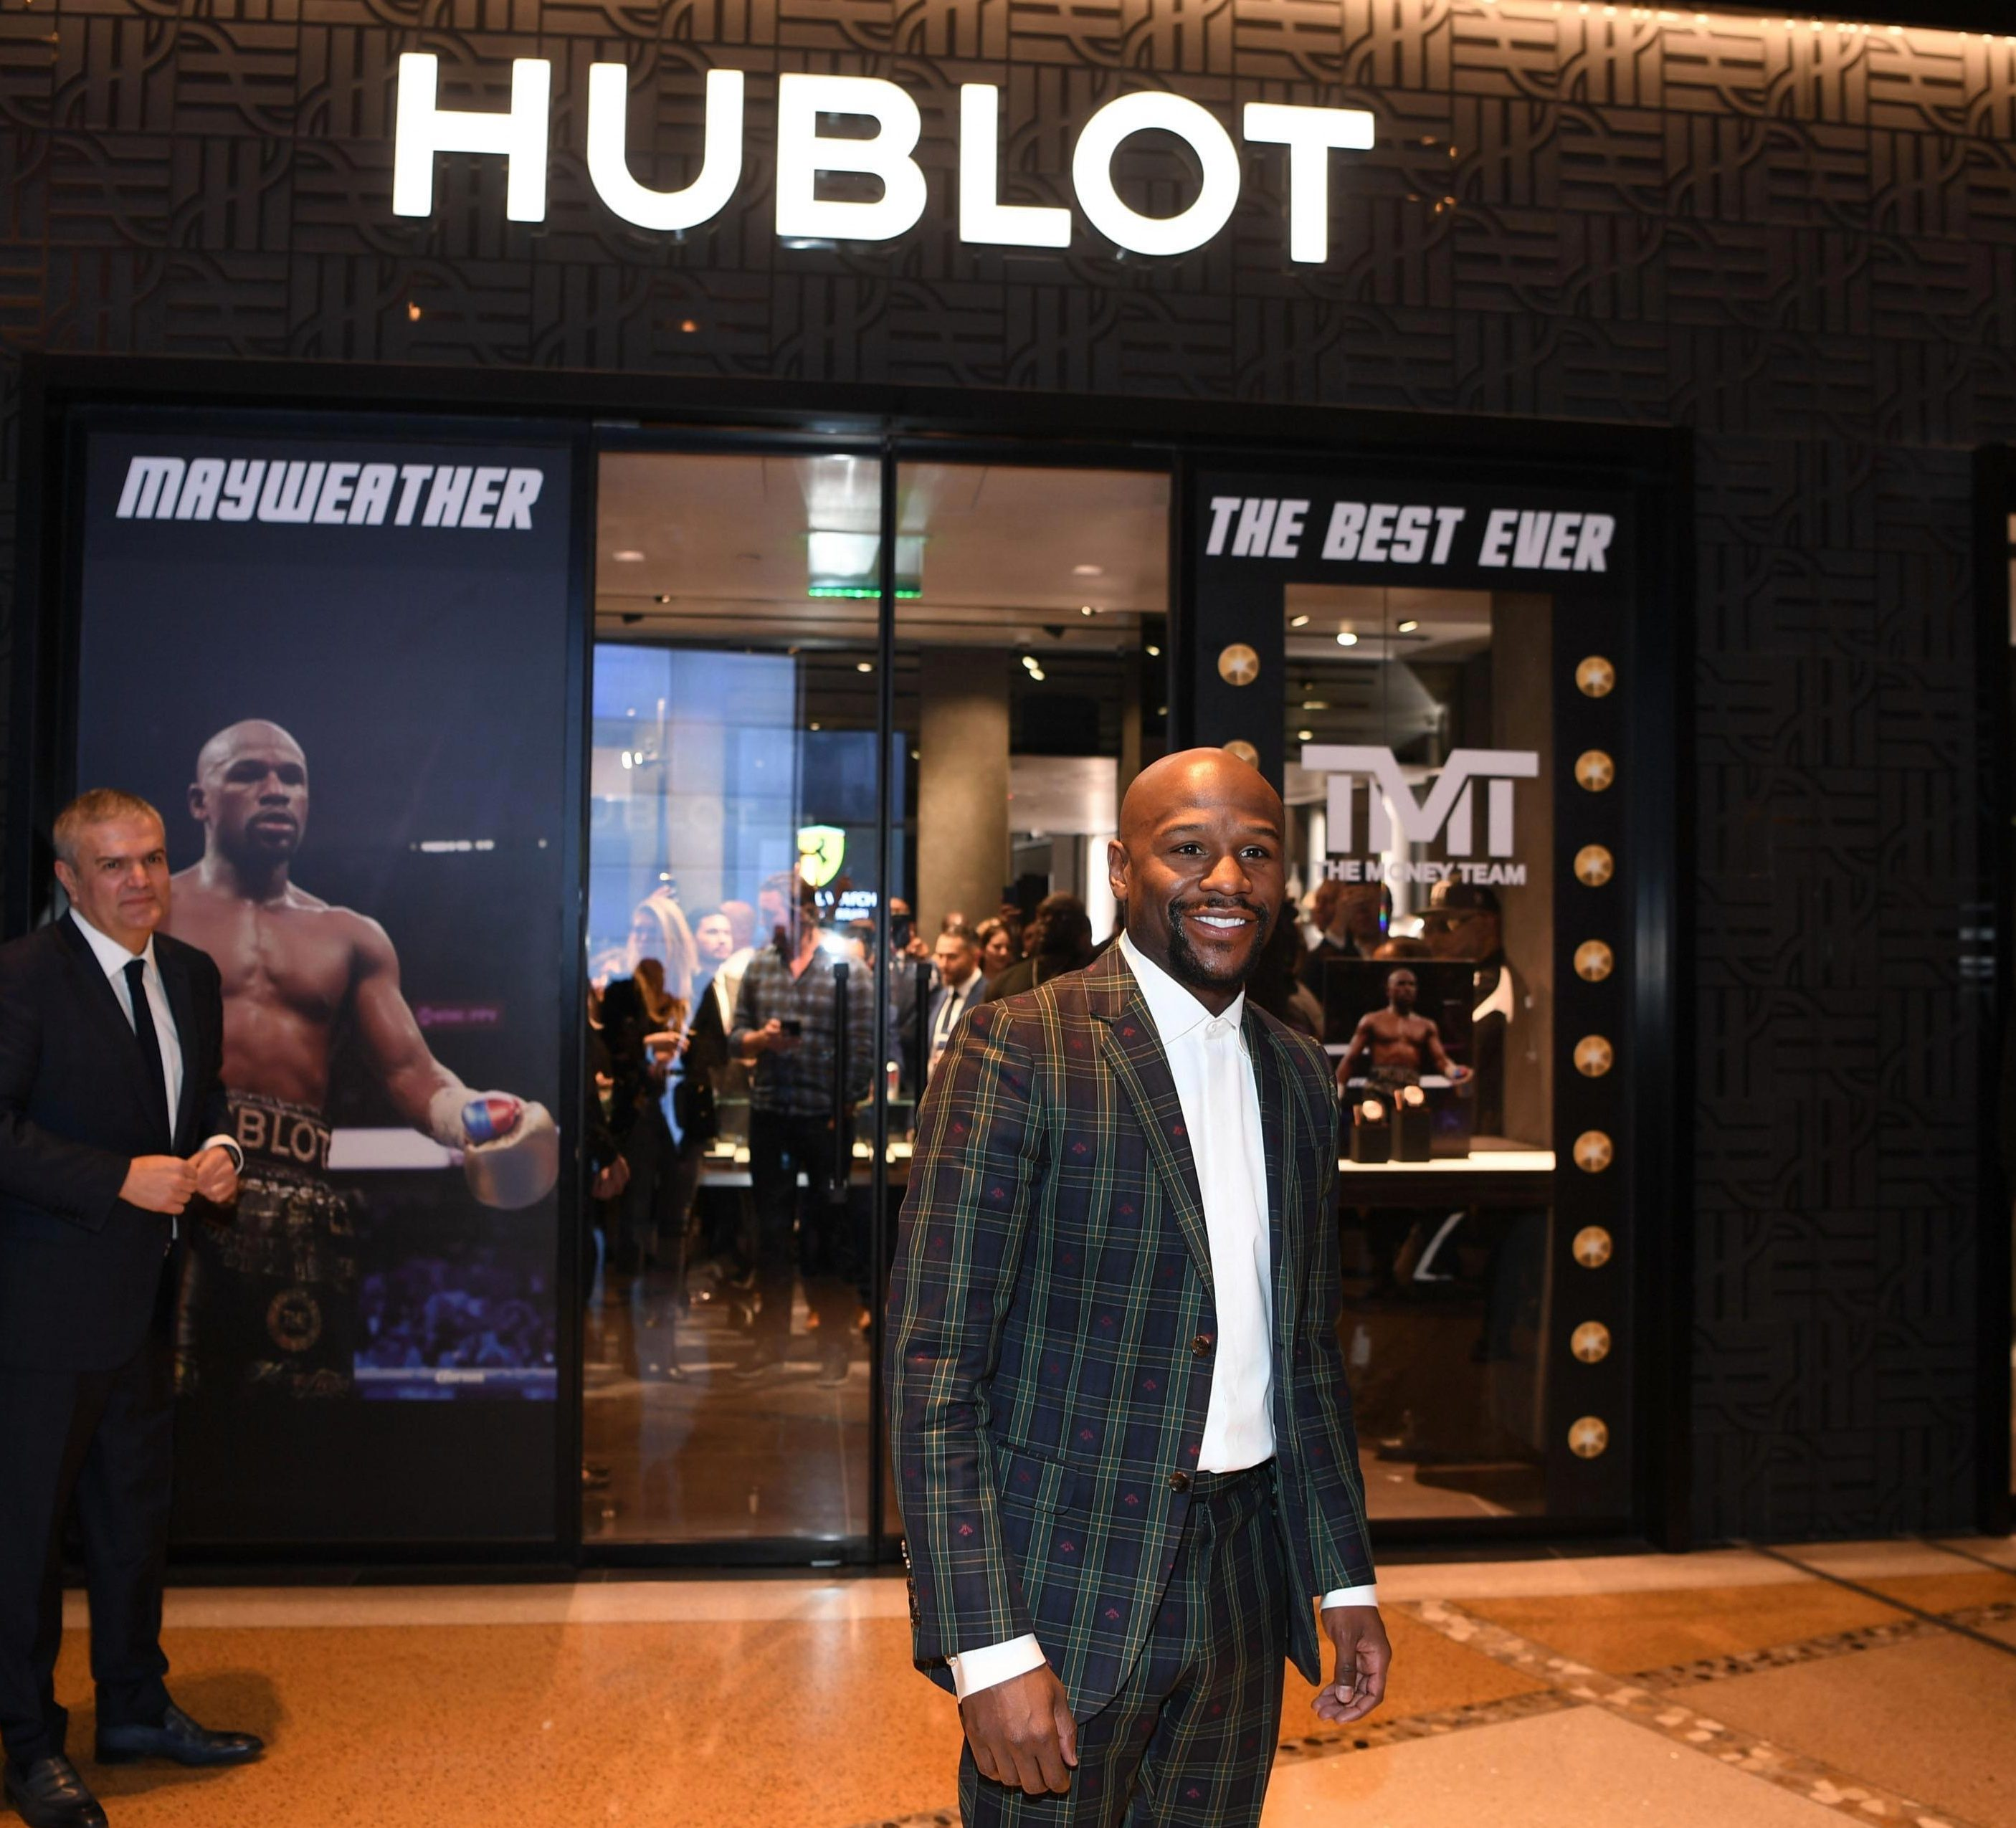 Floyd Mayweather browses the high-end stores with bags full of cash